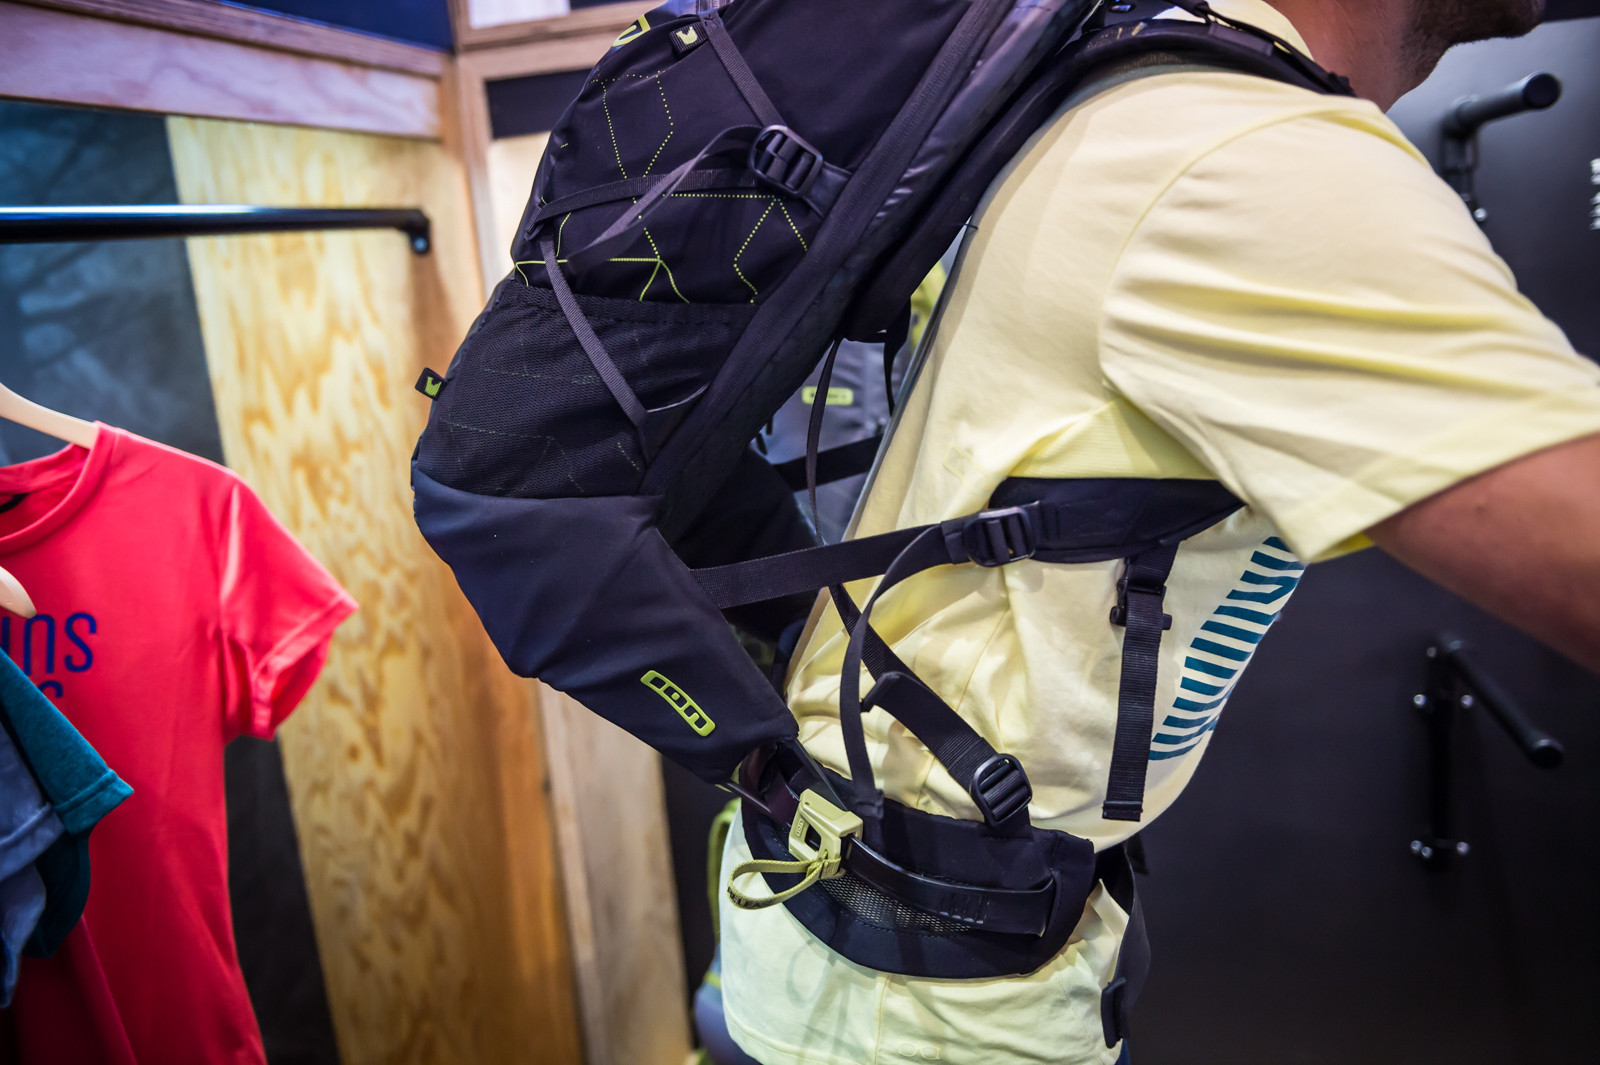 ION Transom Riding Pack with Air Conditioning - 2016 Mountain Bike Apparel & Protection at Eurobike - Mountain Biking Pictures - Vital MTB